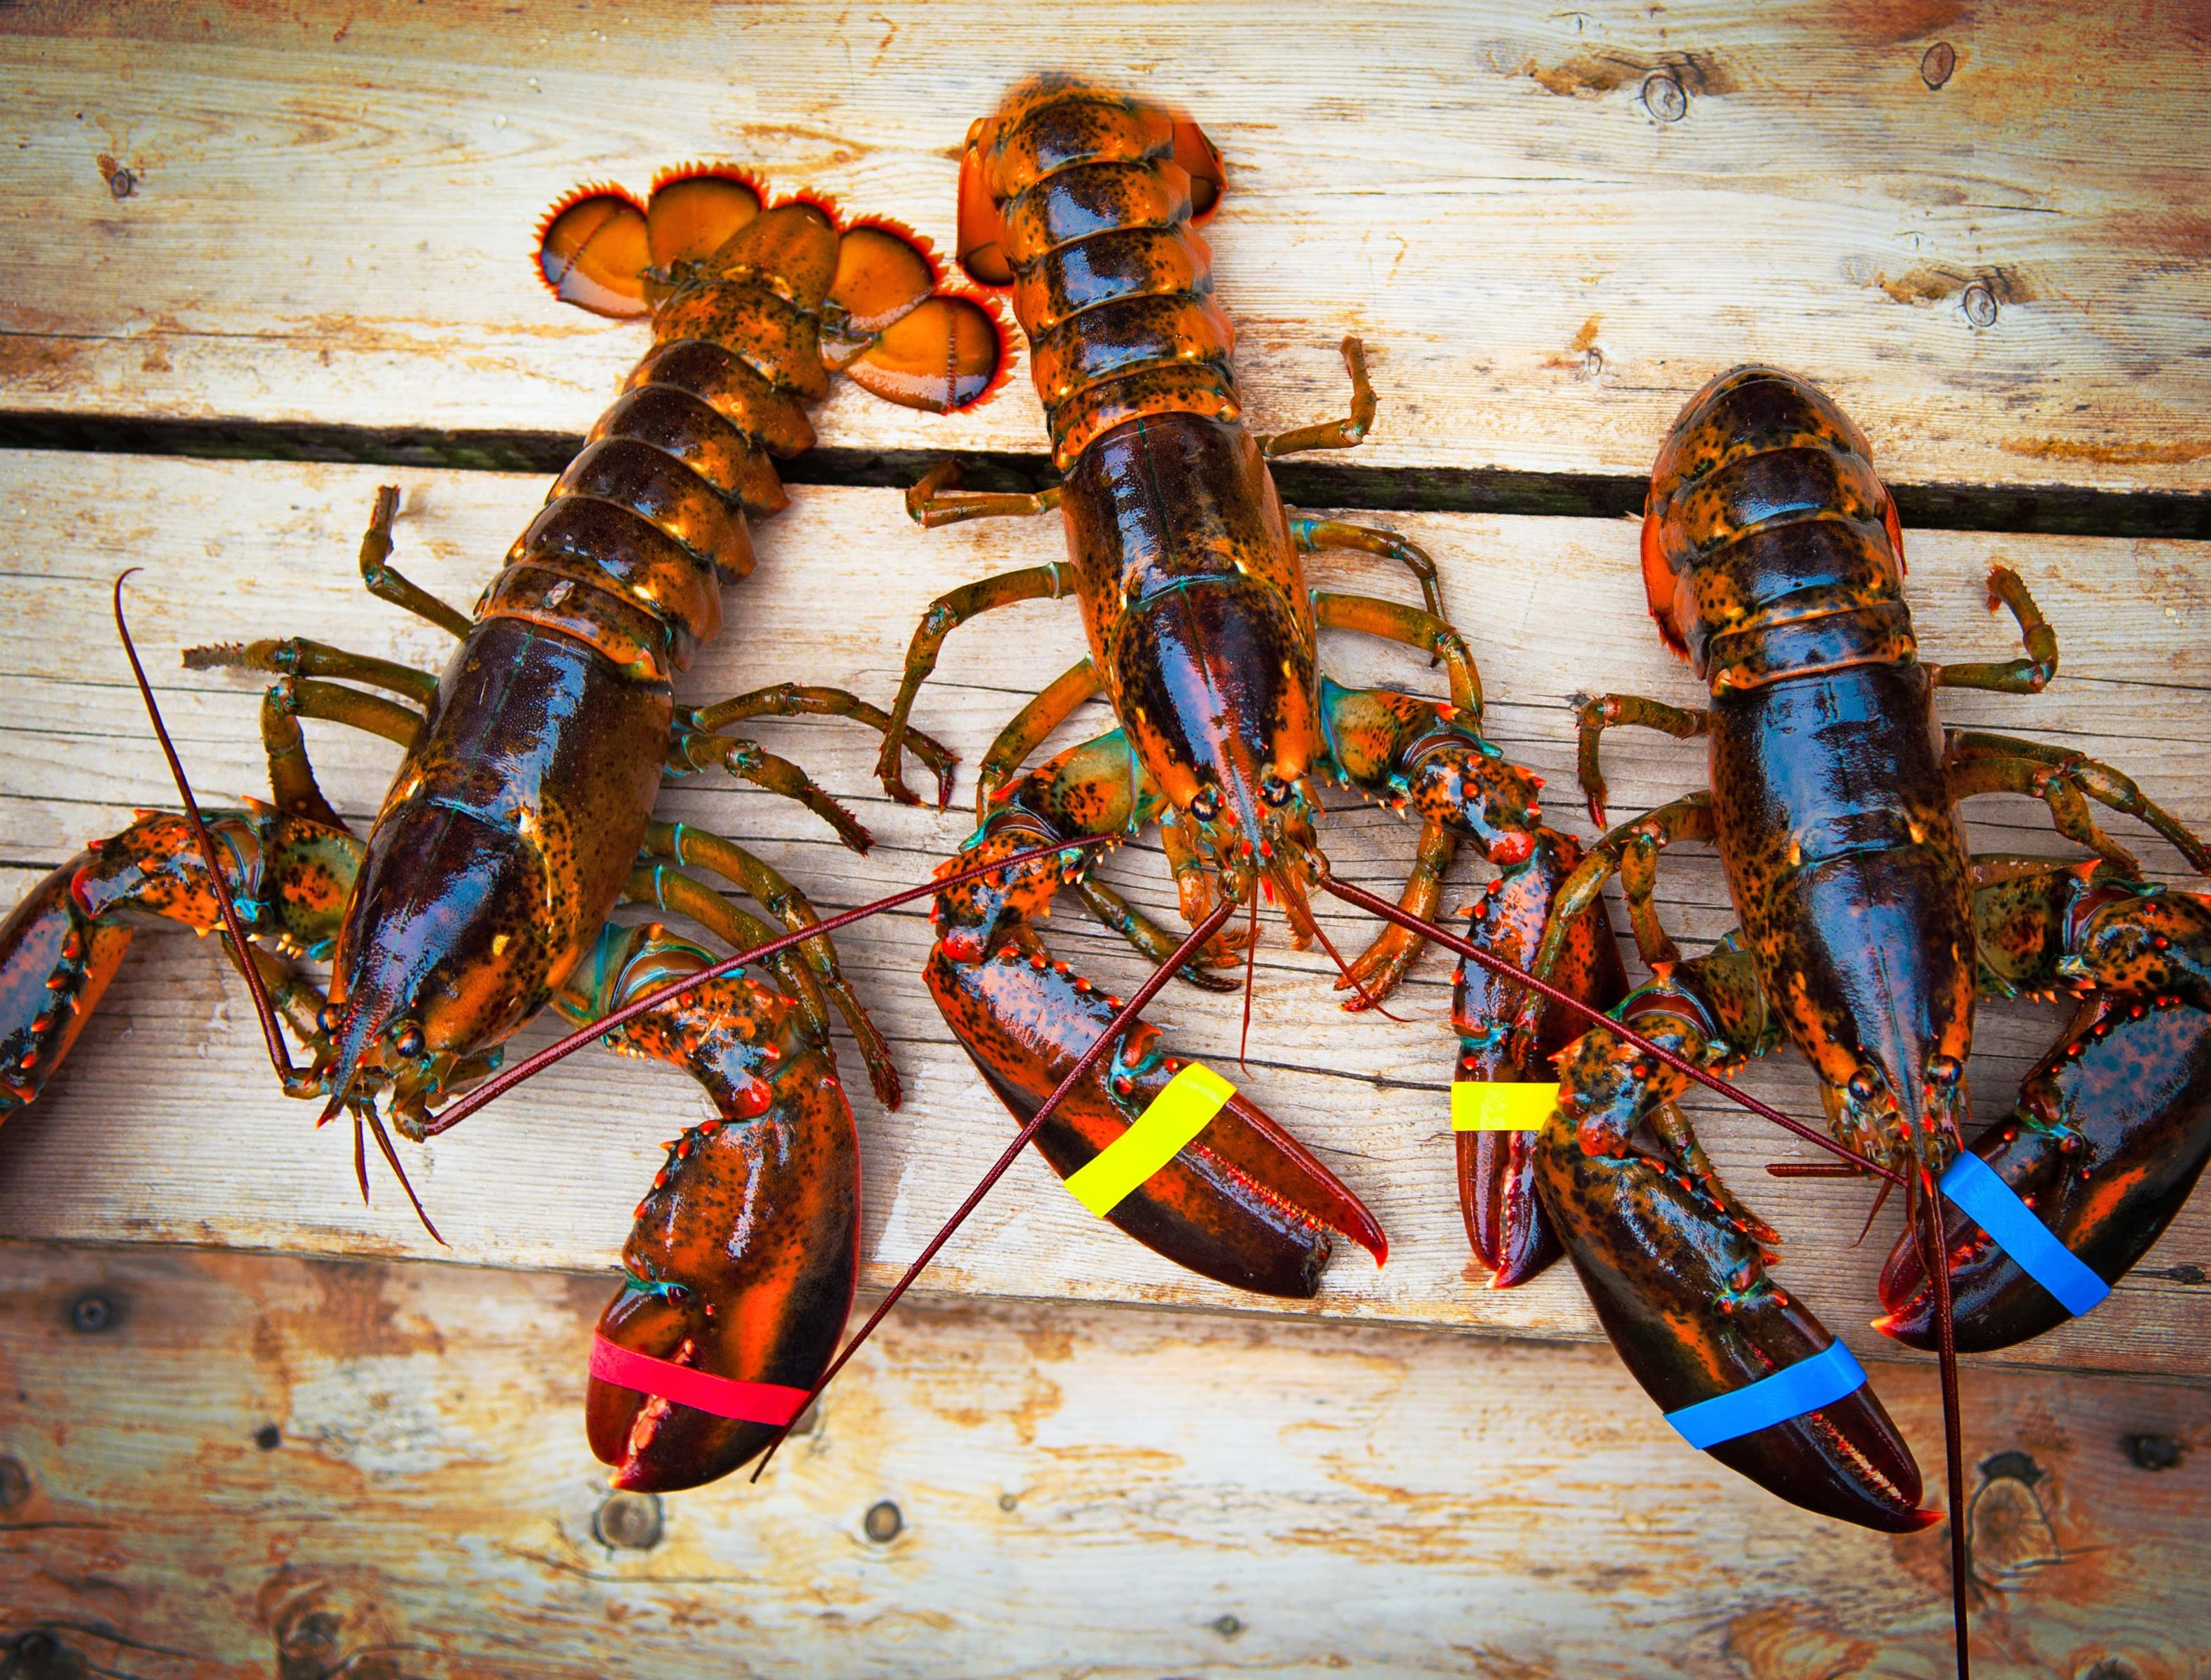 Three lobsters on wooden boards with rubber bands around claws